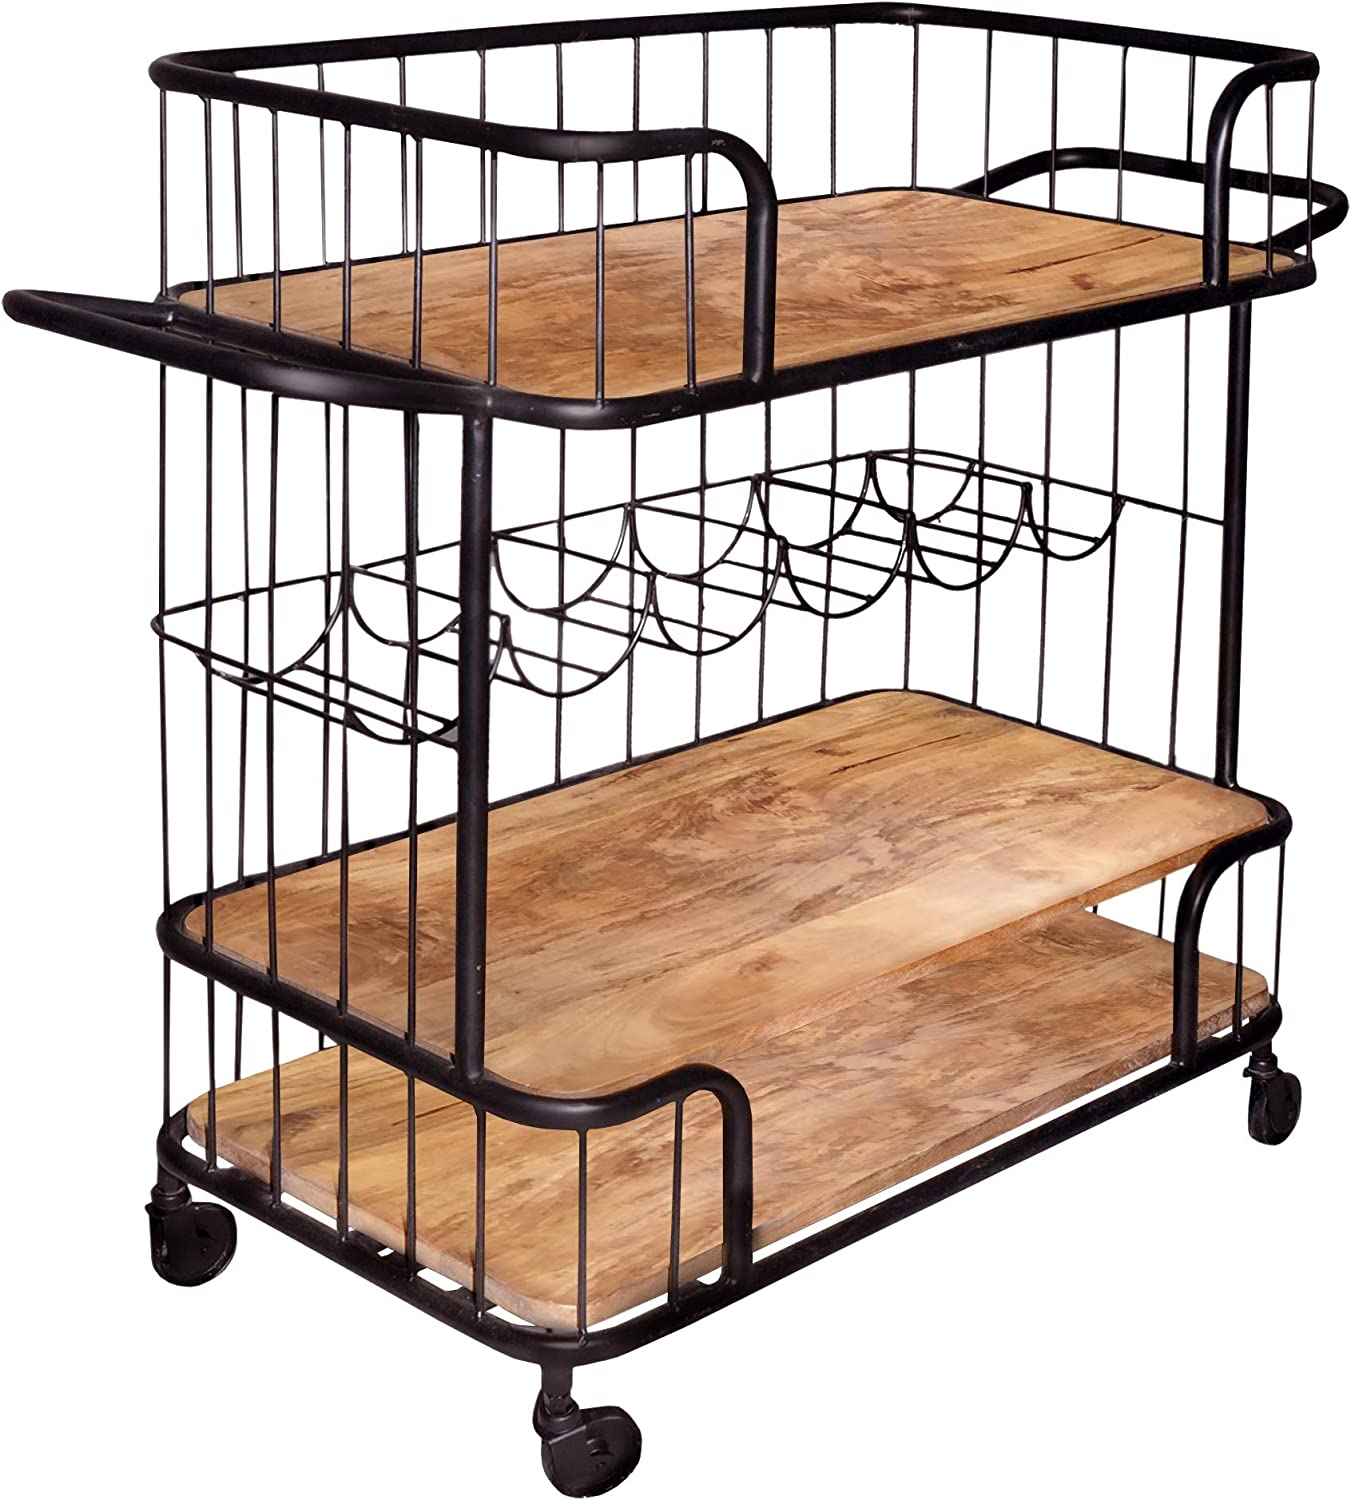 The Urban Port Tup Metal Frame Bar Cart with Wooden Top and 2 Shelves, Black and Brown